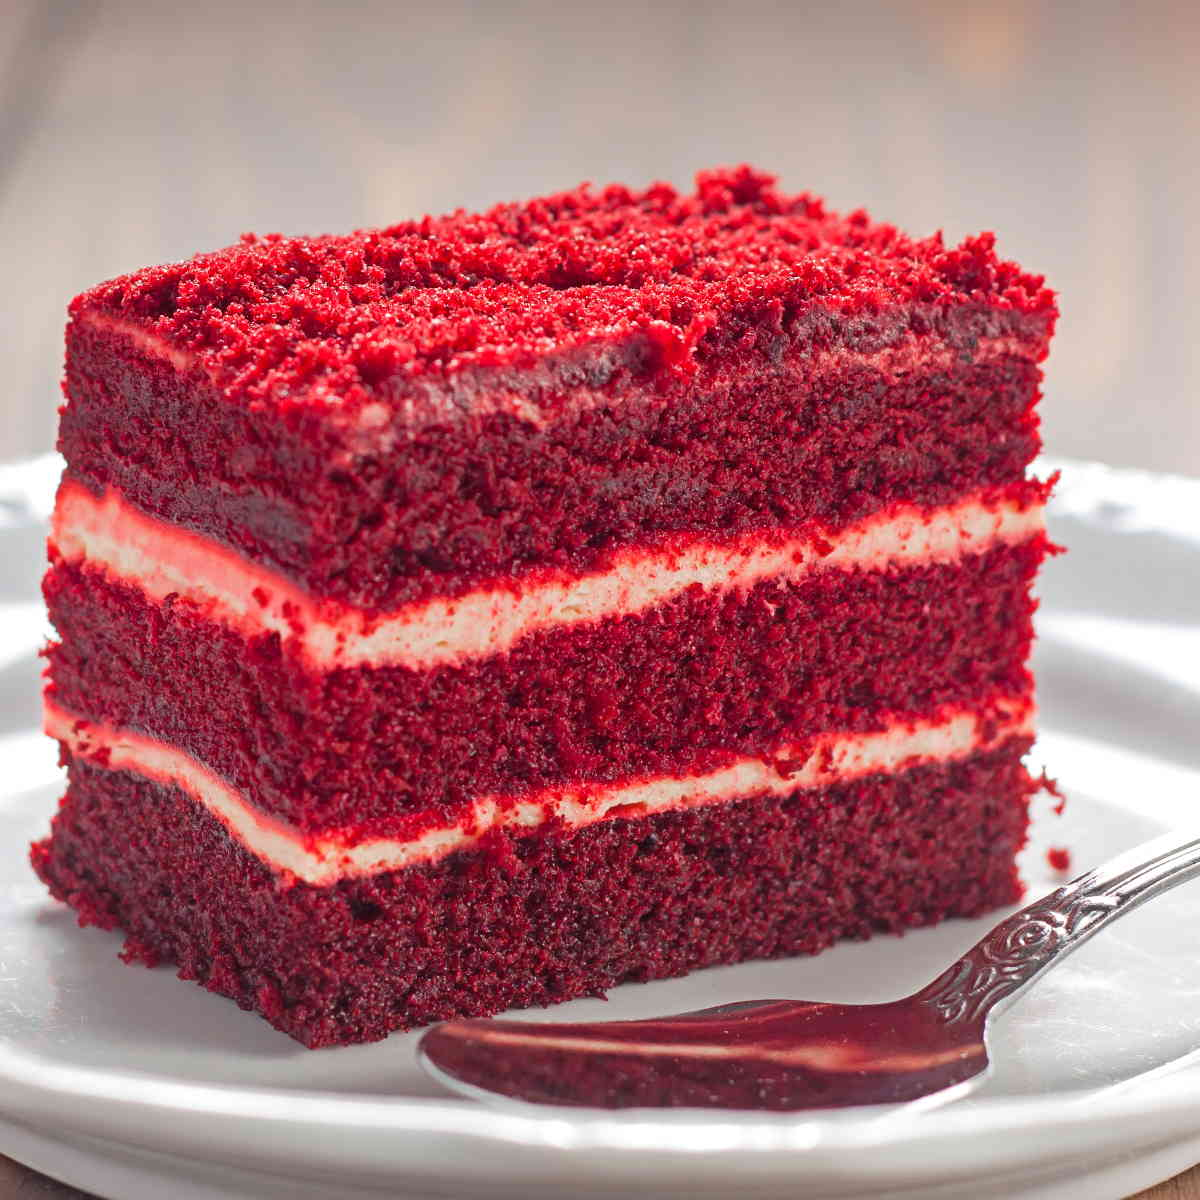 Beet Powder In Red Velvet Cake